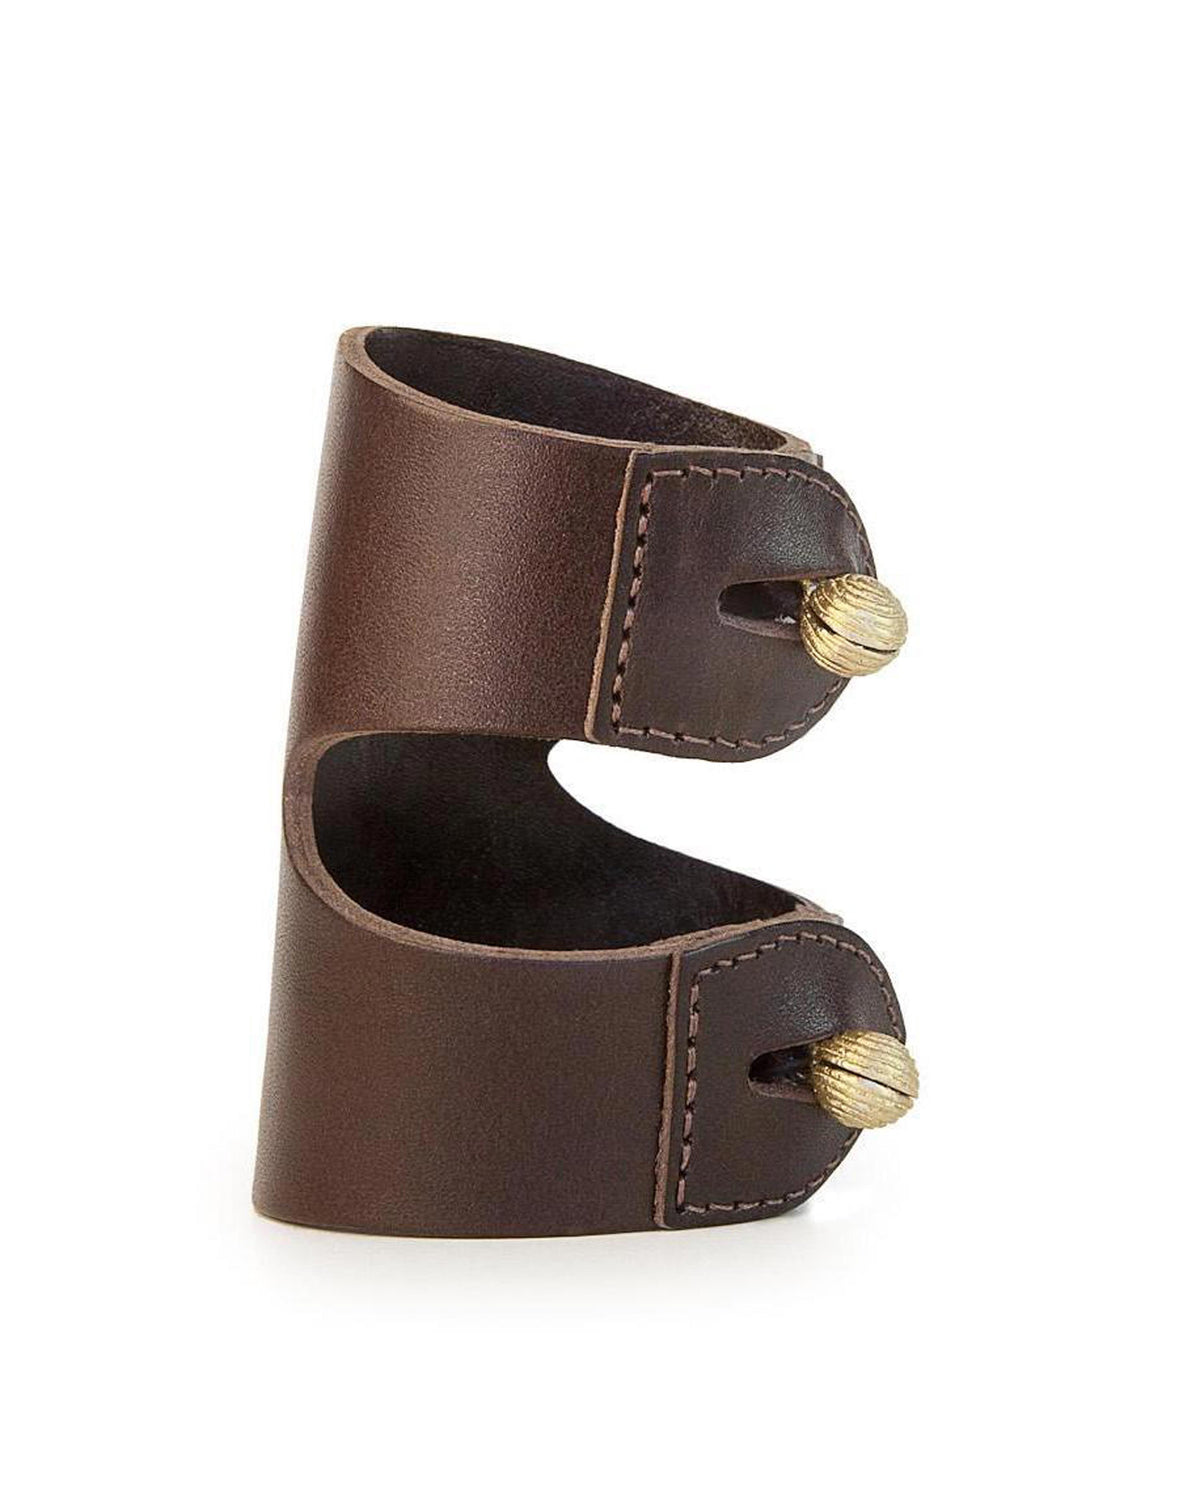 CAGANCHO CUFF in Chocolate Napa